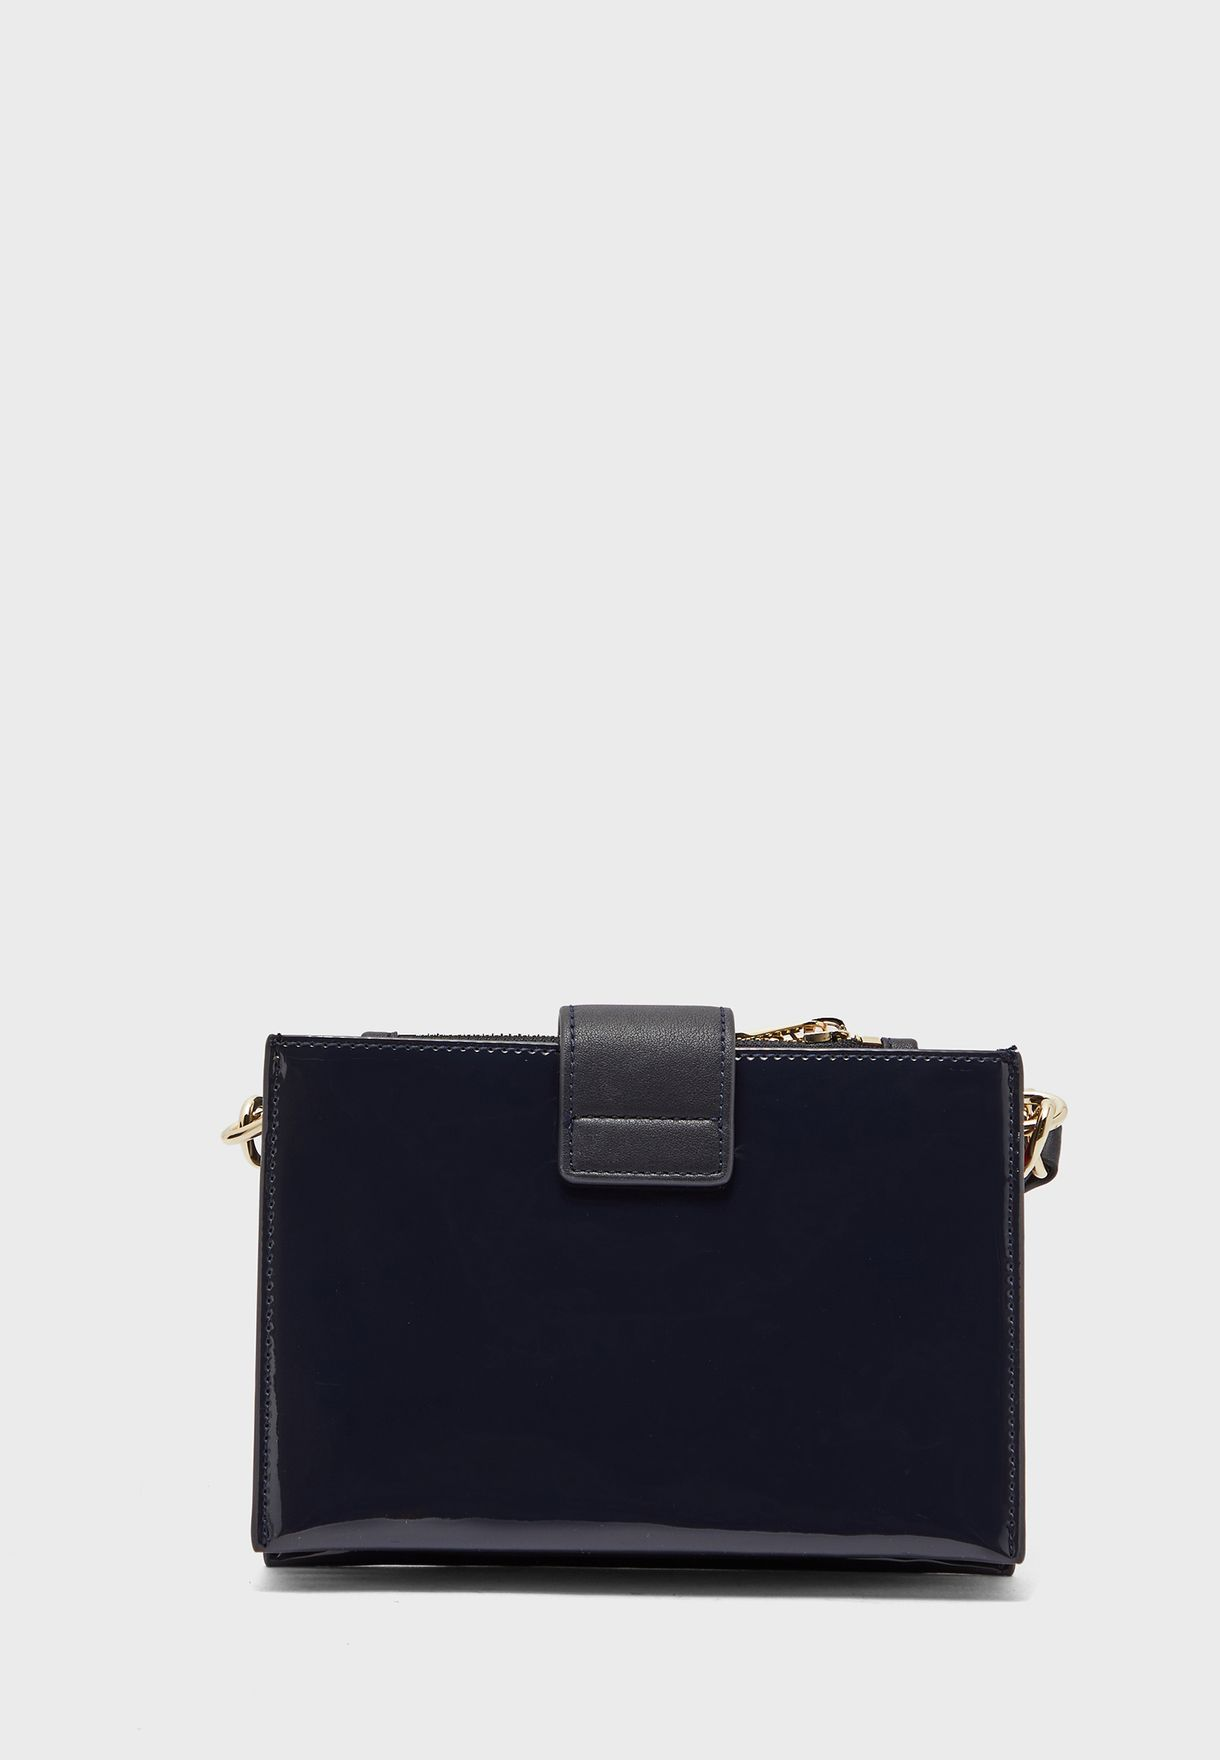 Item Statement Crossbody